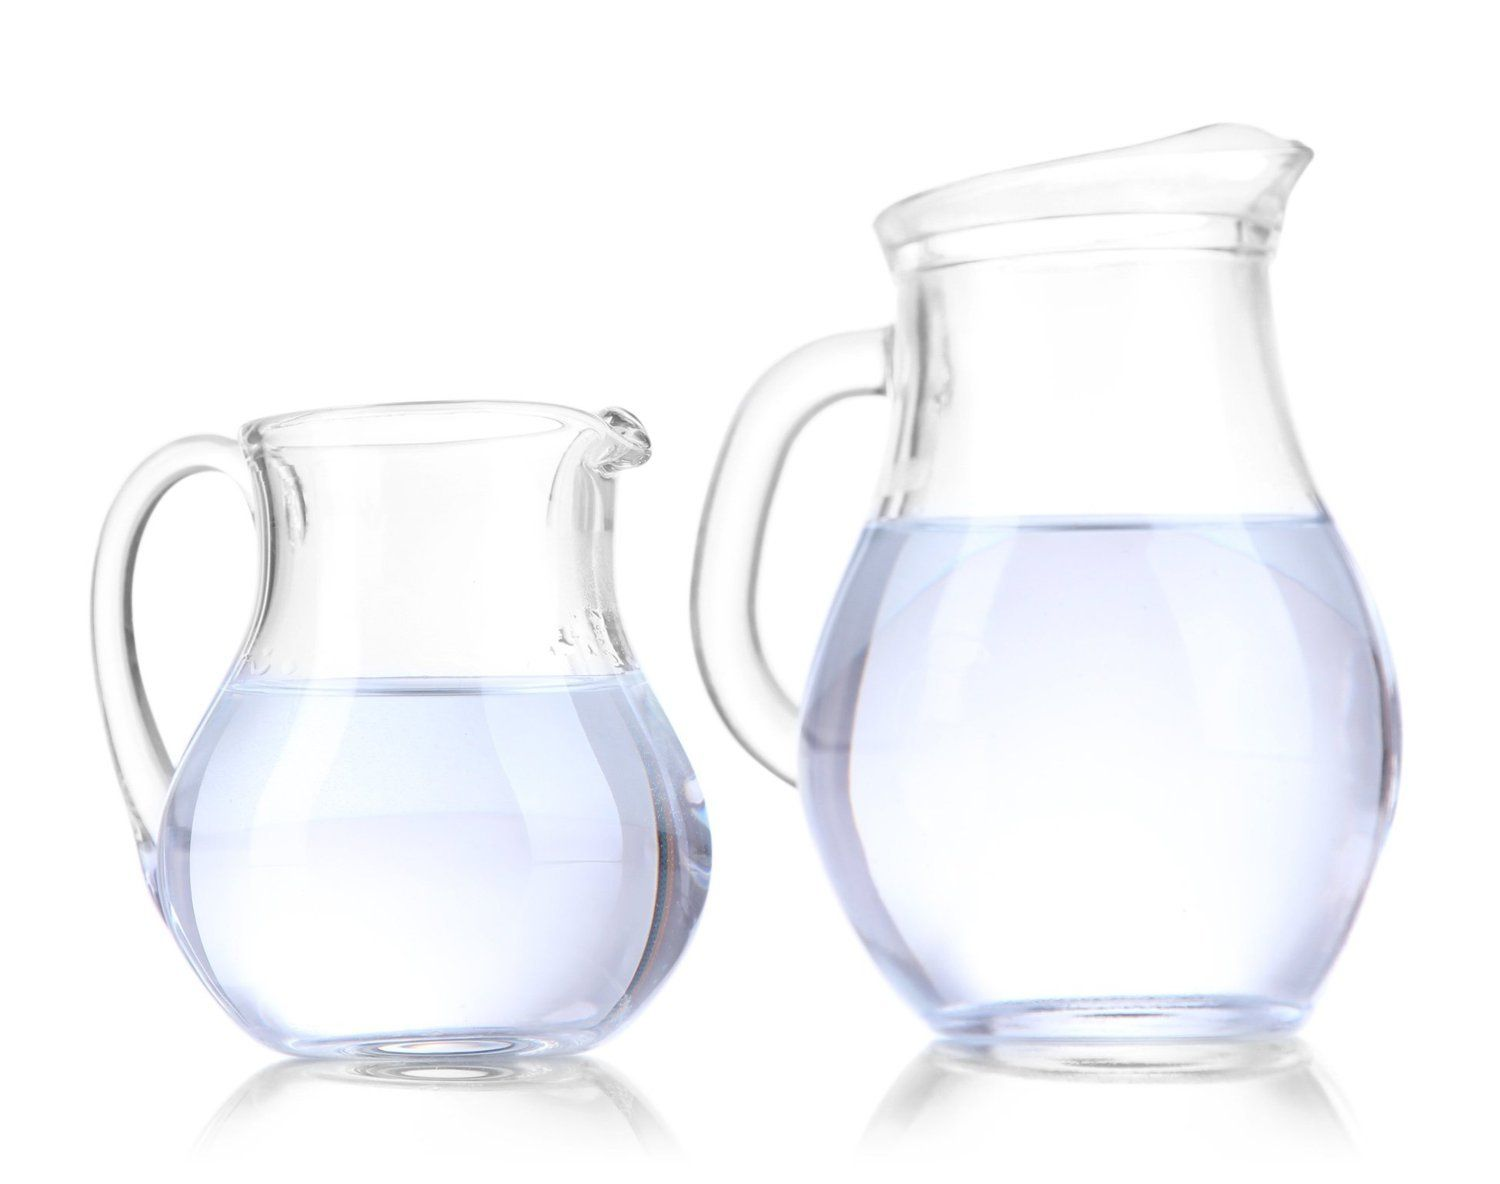 How do i clean mineral deposits off glass pitchers